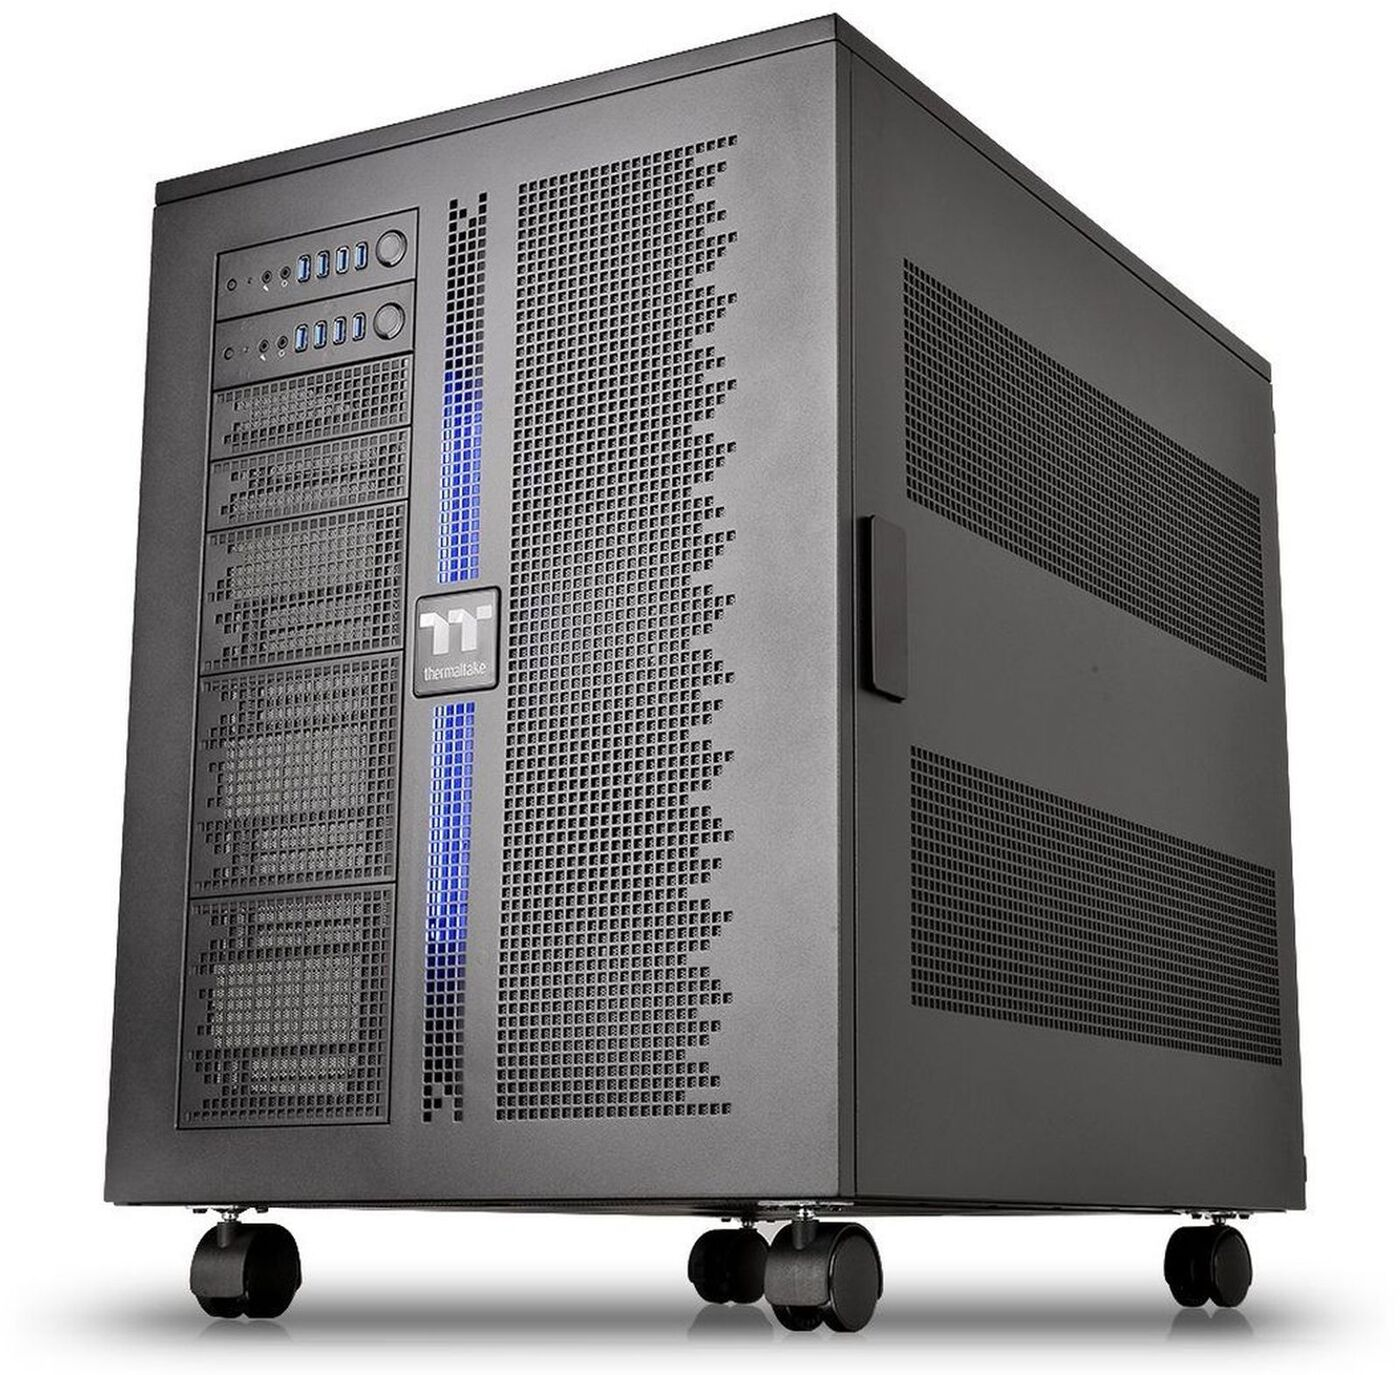 Корпус компьютерный Thermaltake Case Core W200 Super Tower, Black, Window, Без БП, Full ATX, CA-1F5-00F1WN-00